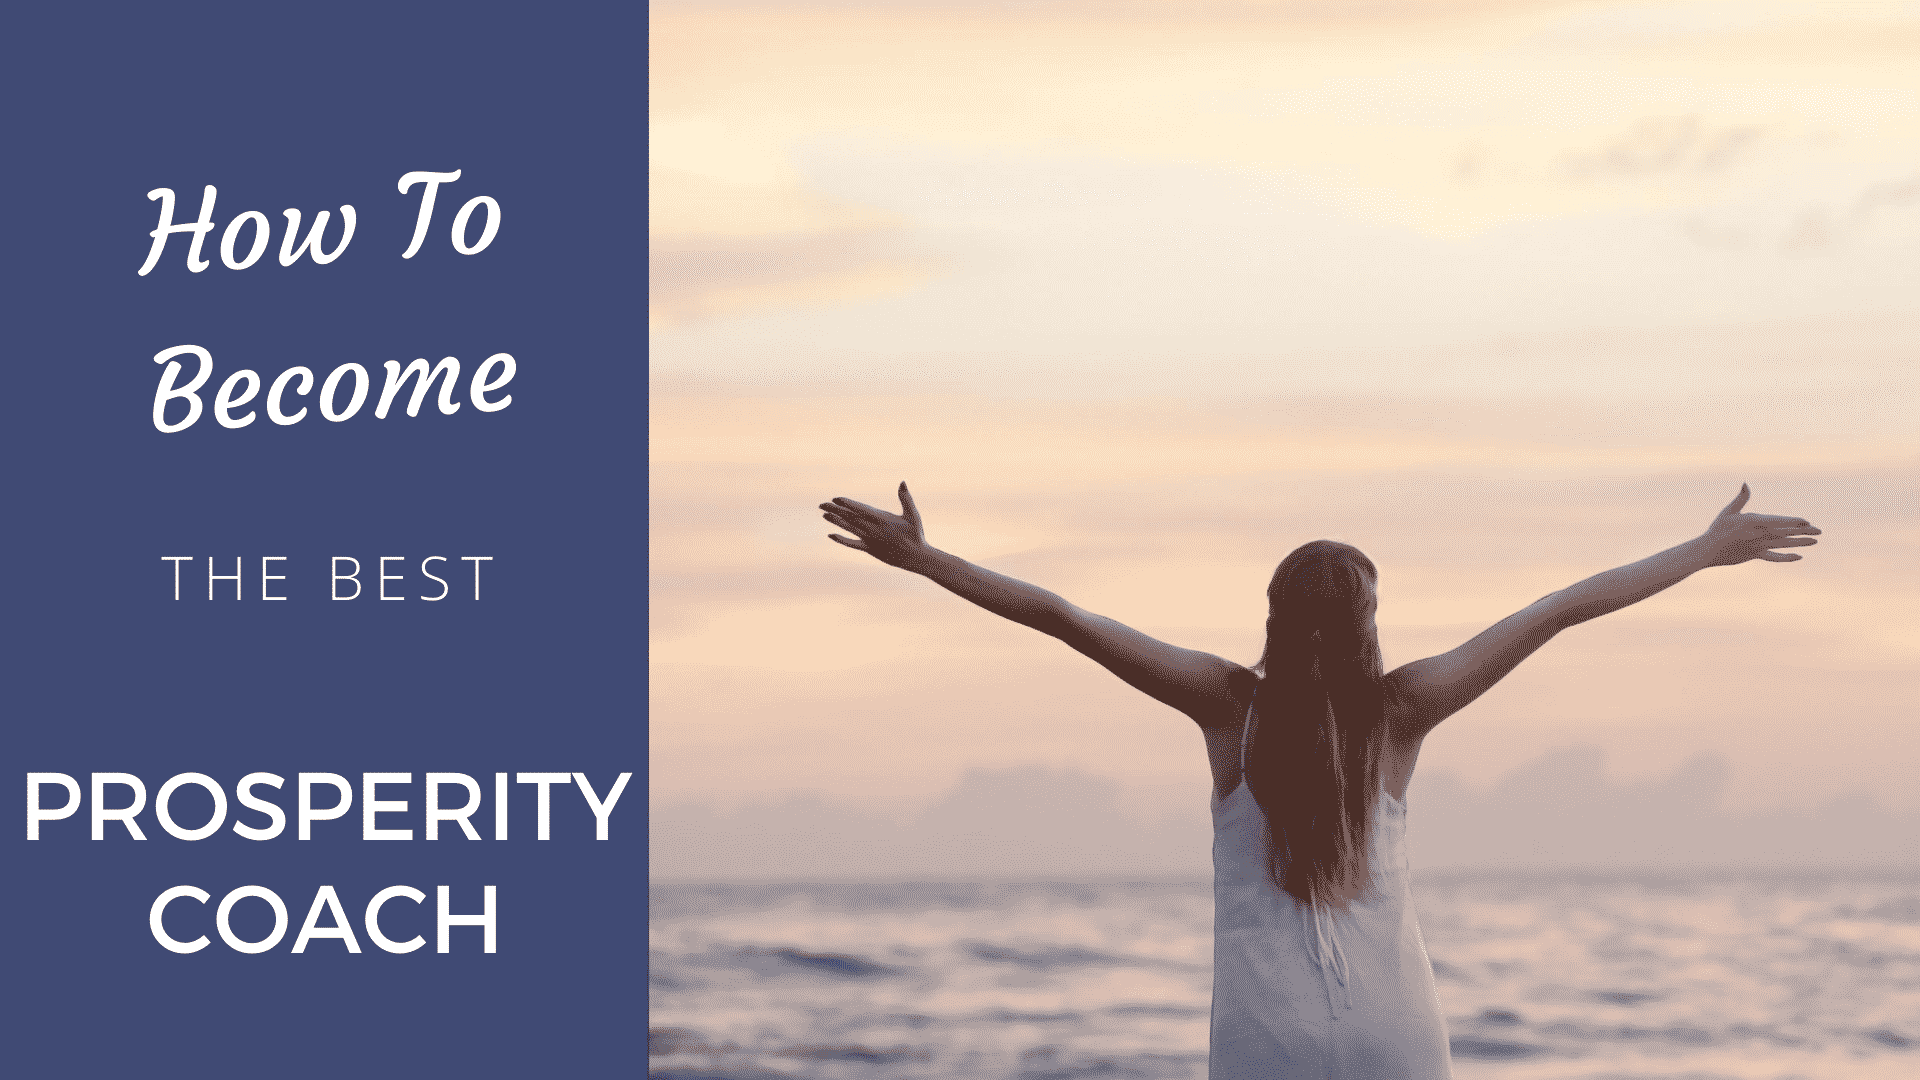 How to Become the Best Prosperity Coach in 2020? Prosperity Coach